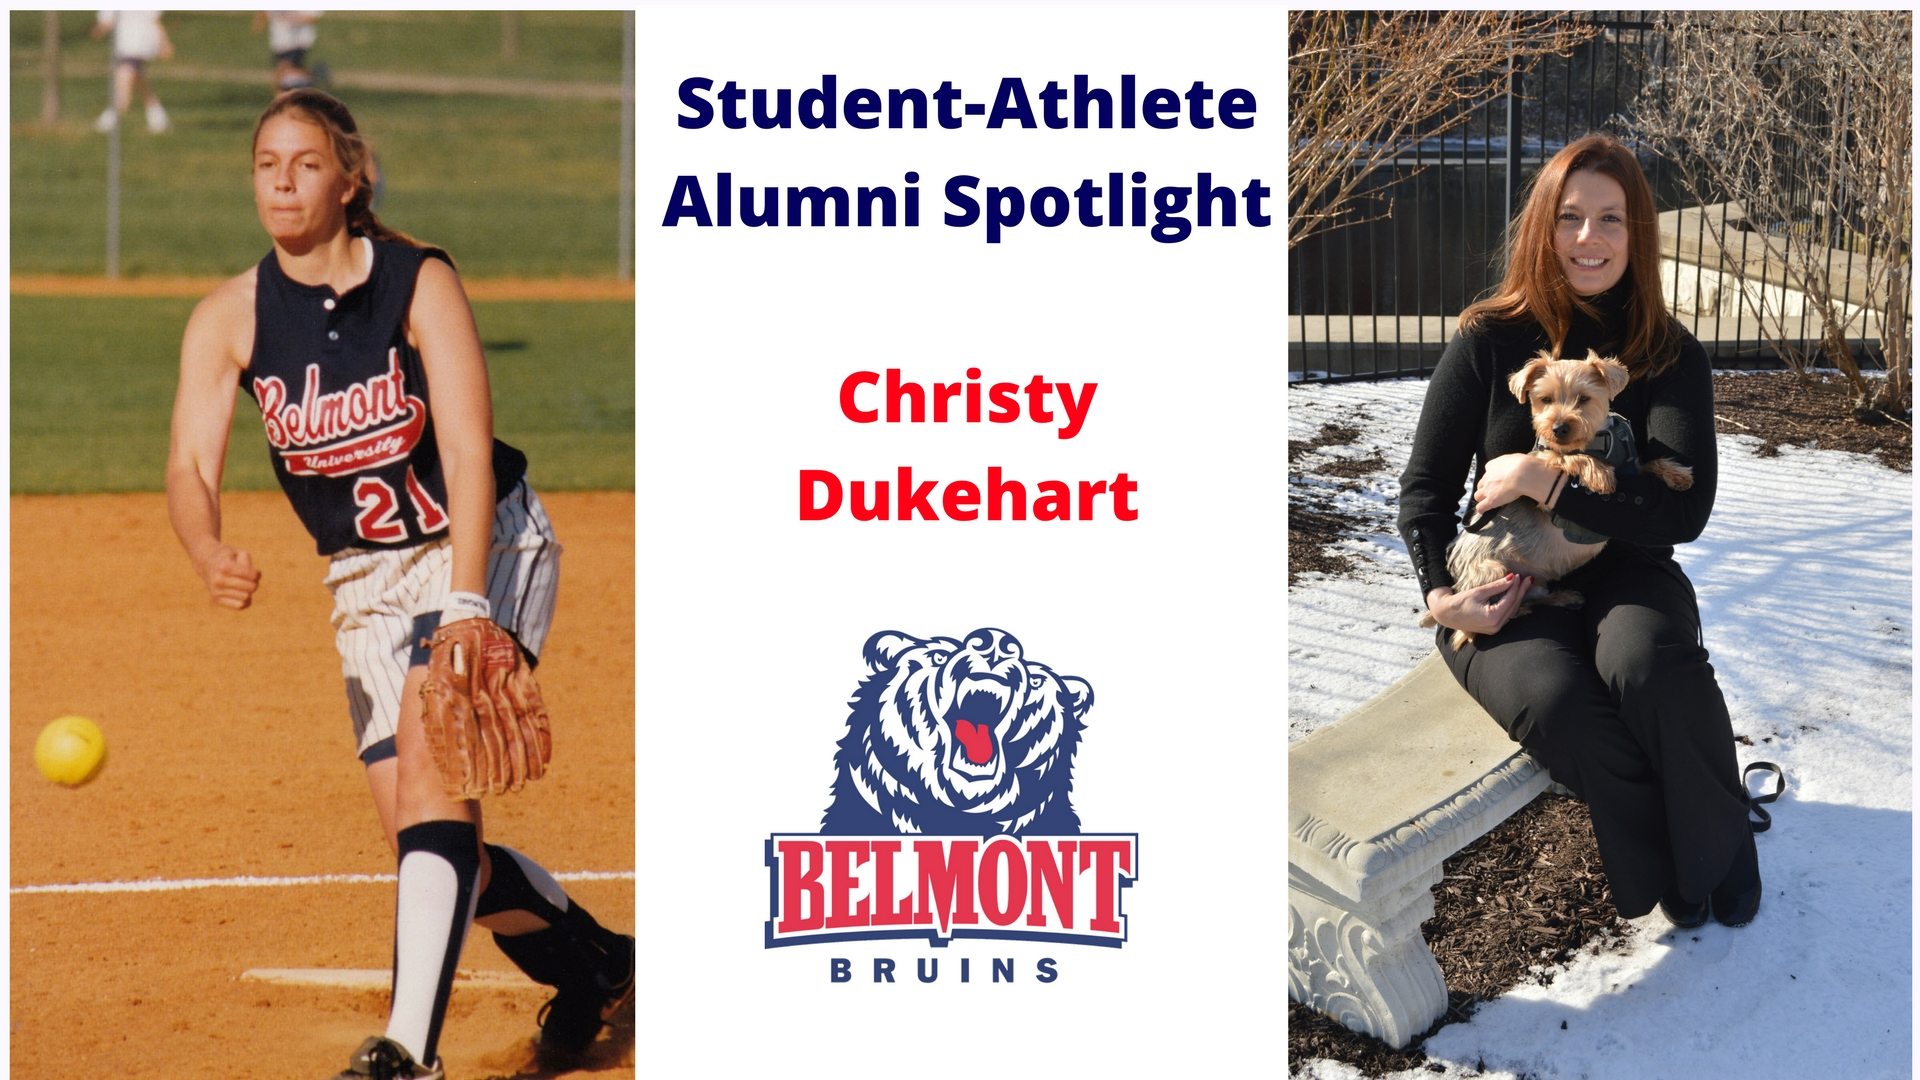 Student-Athlete Alumni Spotlight -- Christy Dukehart